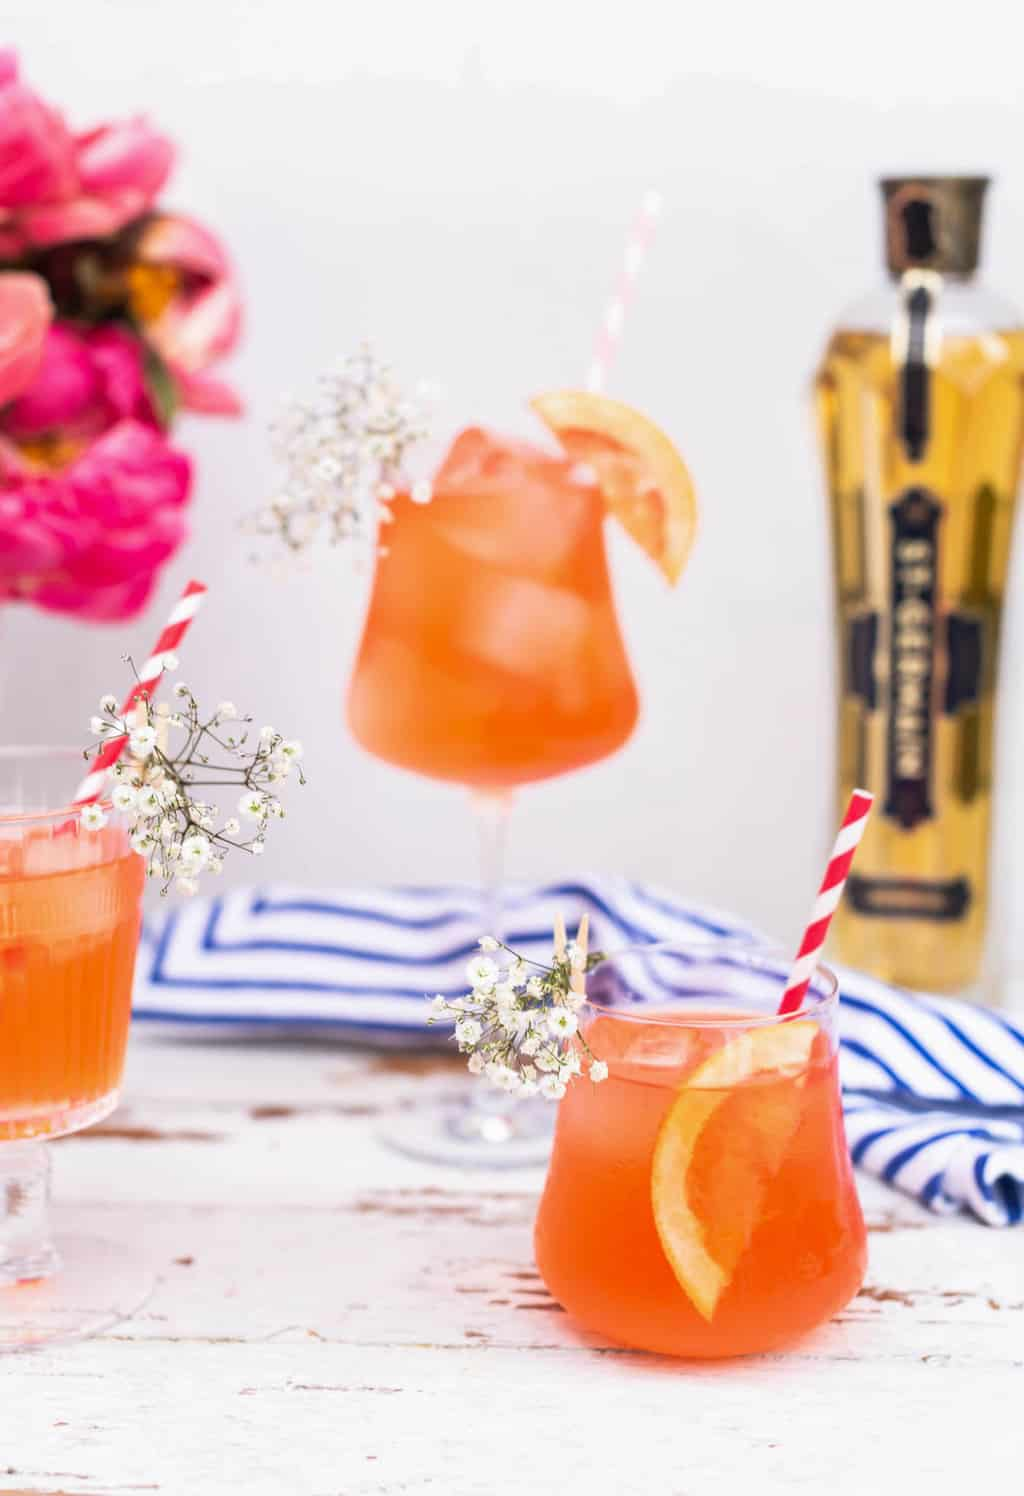 photo of how you can add a twist to with elderflower liquor to a classic cocktail by top Houston lifestyle blogger Ashley Rose of Sugar & Cloth